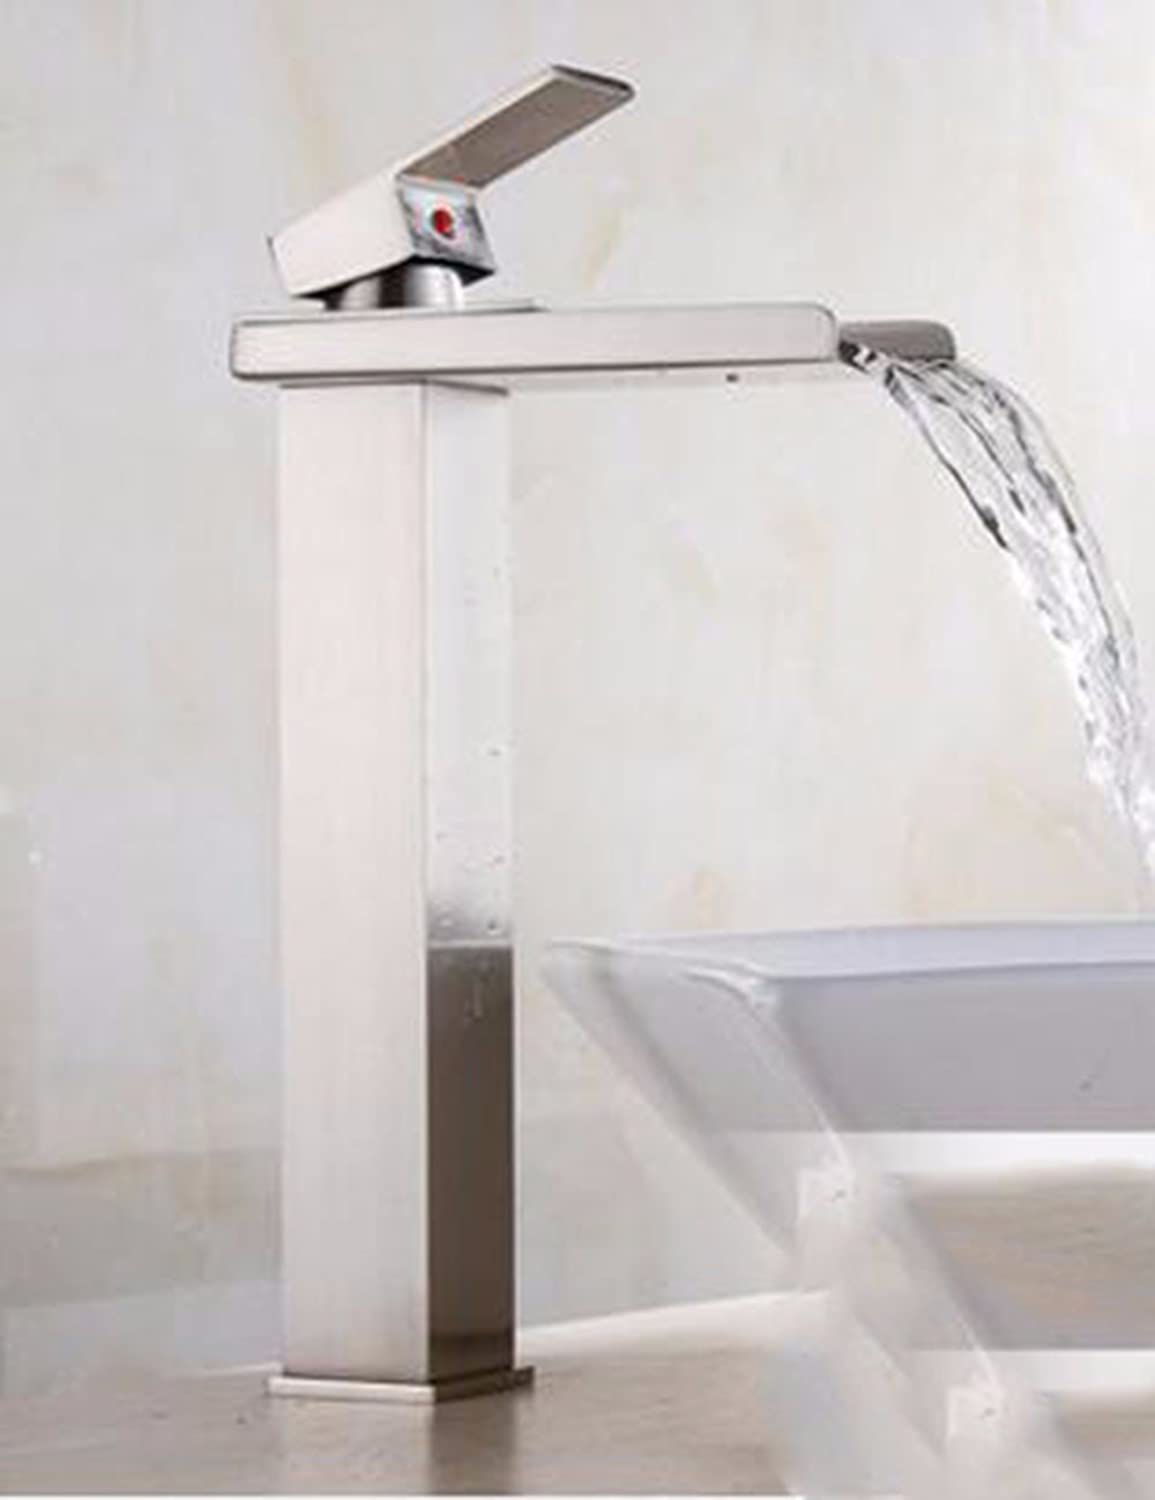 Qmpzg-The Copper Surface Basin Faucet?Cold Water Basin Basin Mixer?The Bathrooms Are Raised And The Bathroom Faucets?The Waterfall Mixer?E